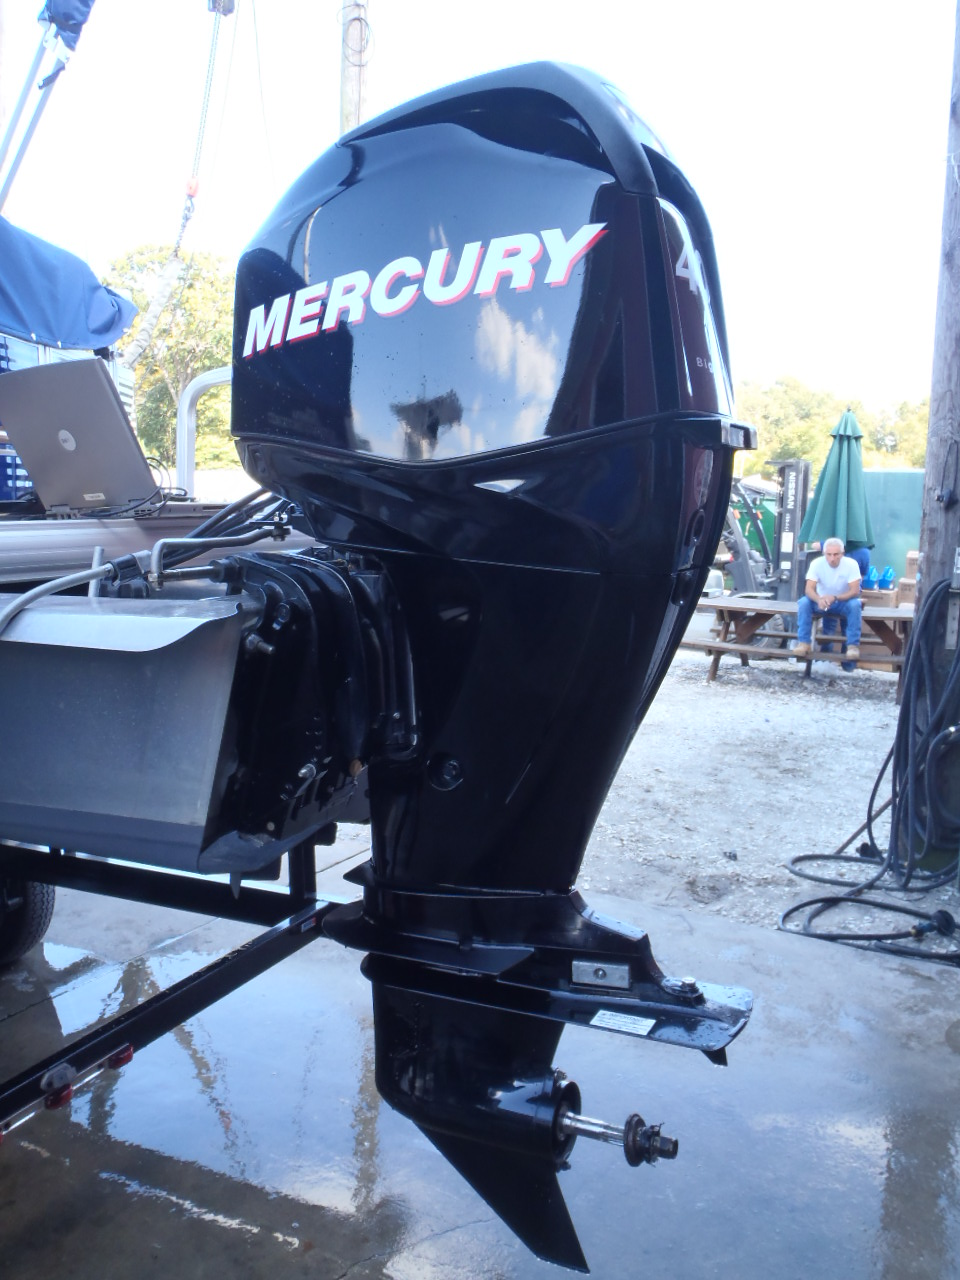 Craigslist used honda outboard motors 4 stroke autos post for Yamaha outboard mechanic near me